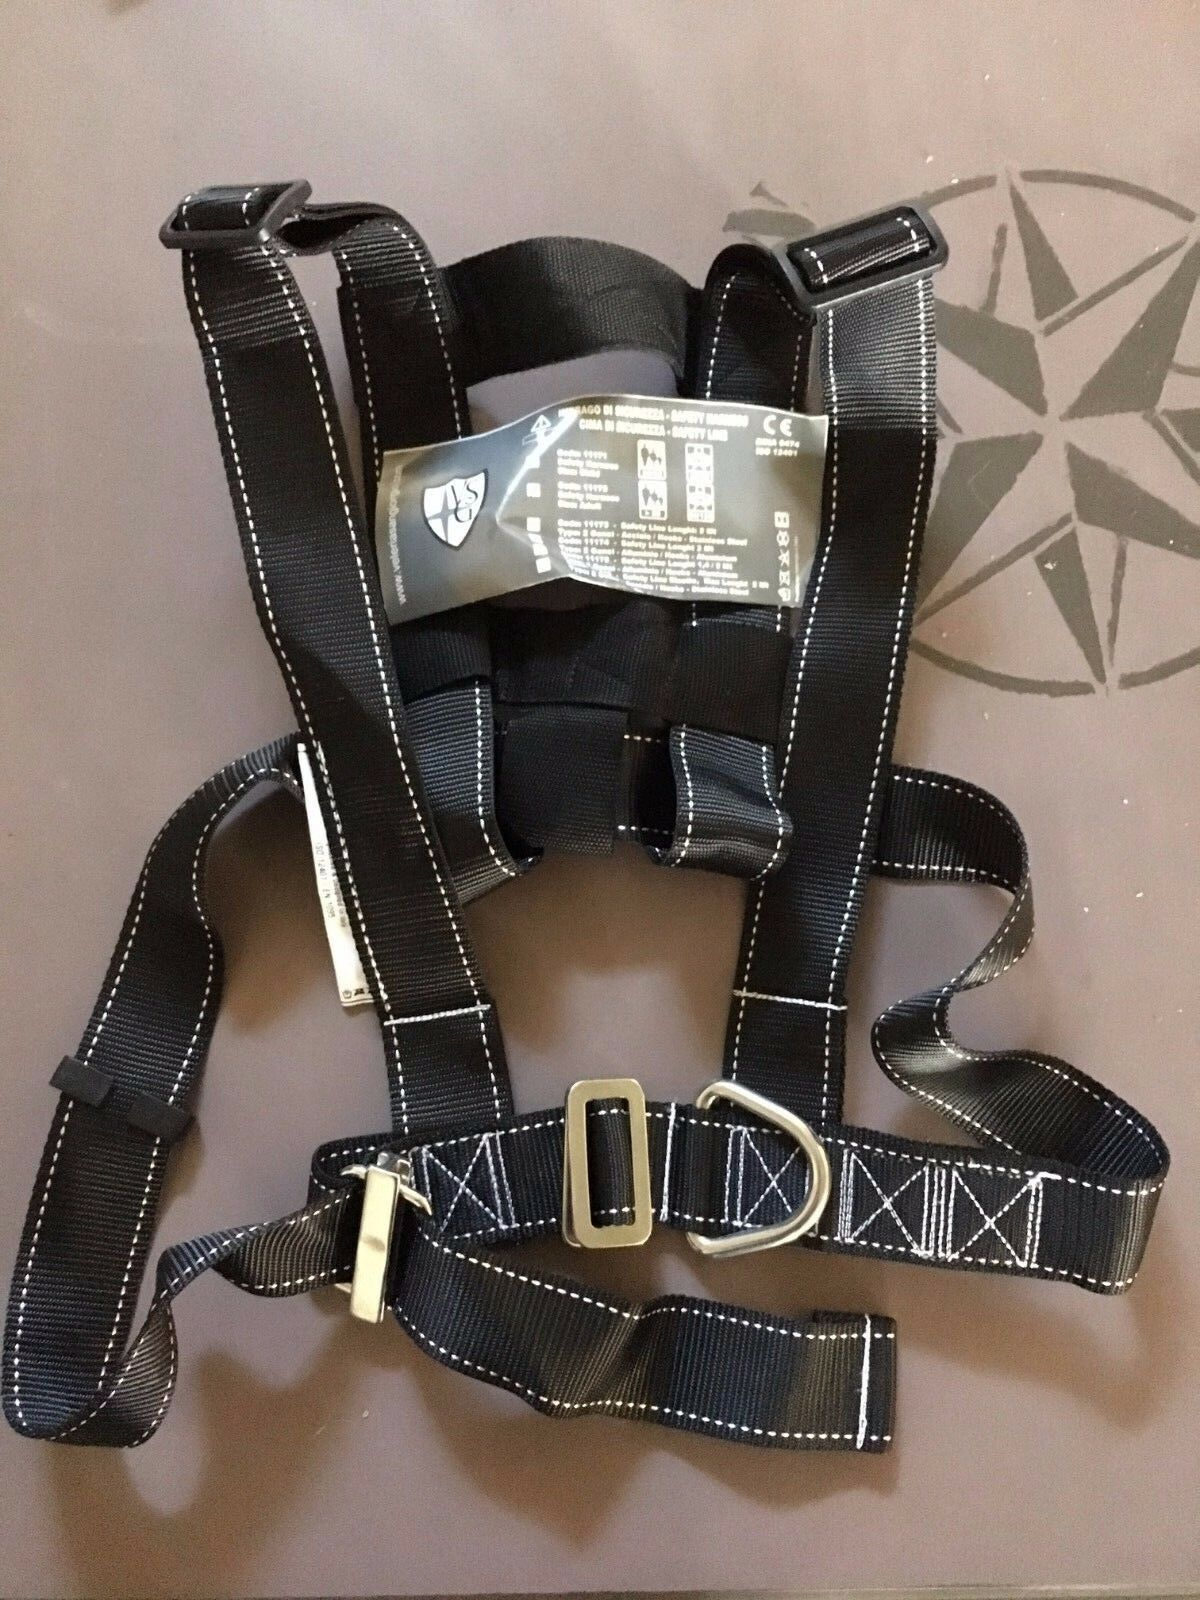 HARNESS SECURITY ADULT + 110.2lbs